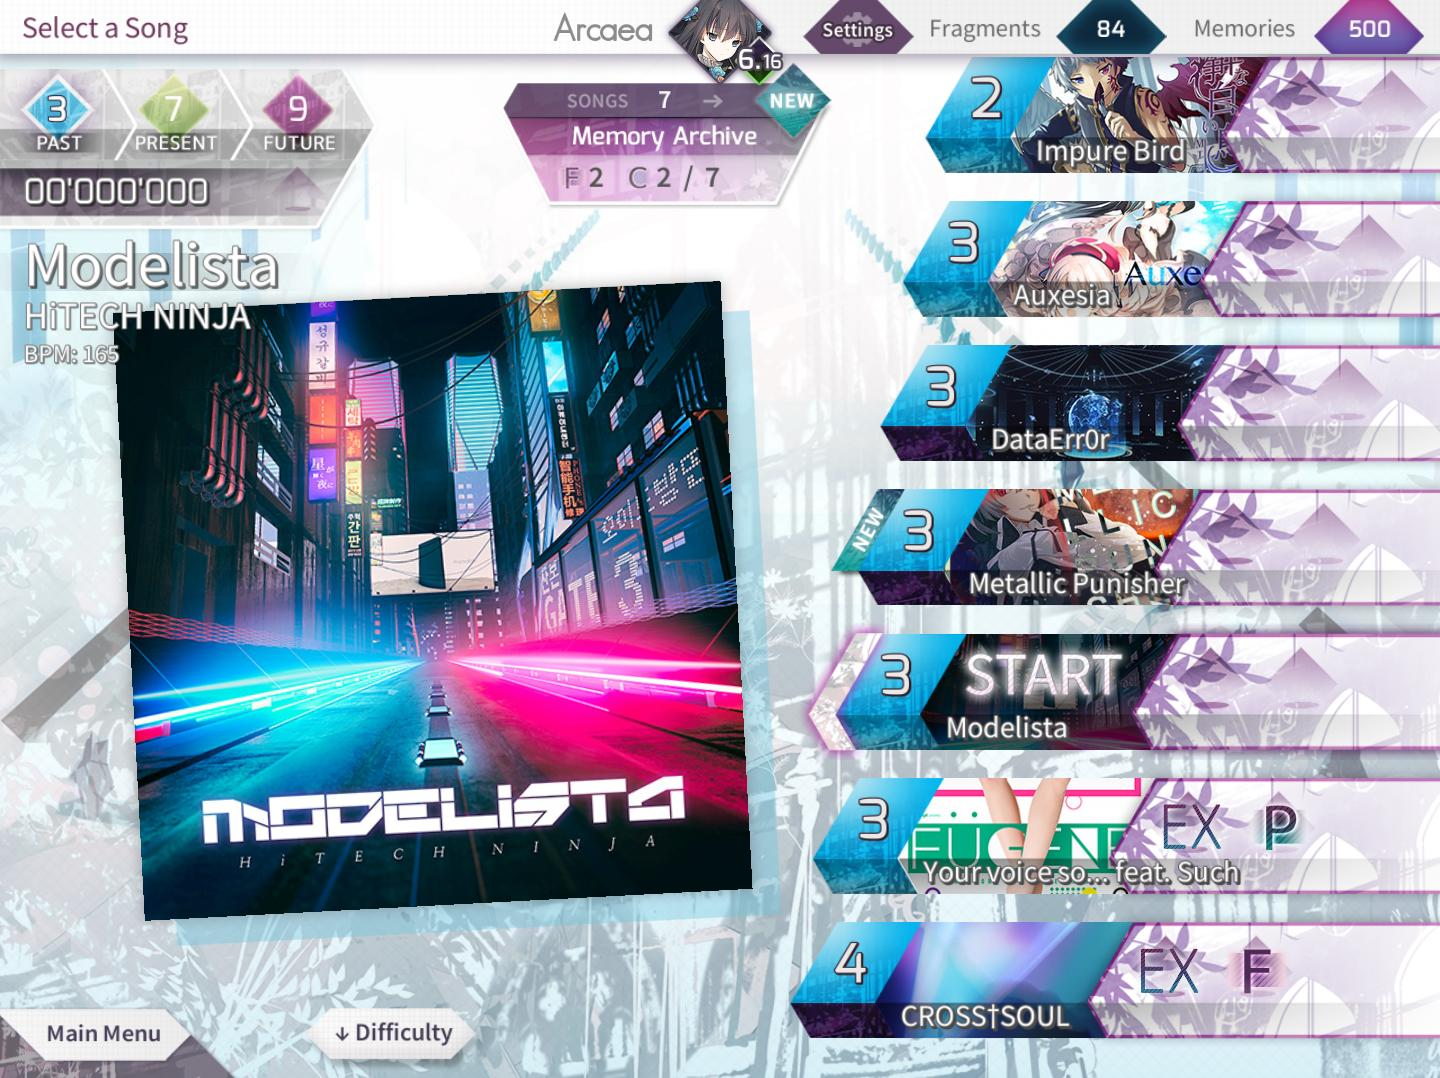 Arcaea for Android - APK Download